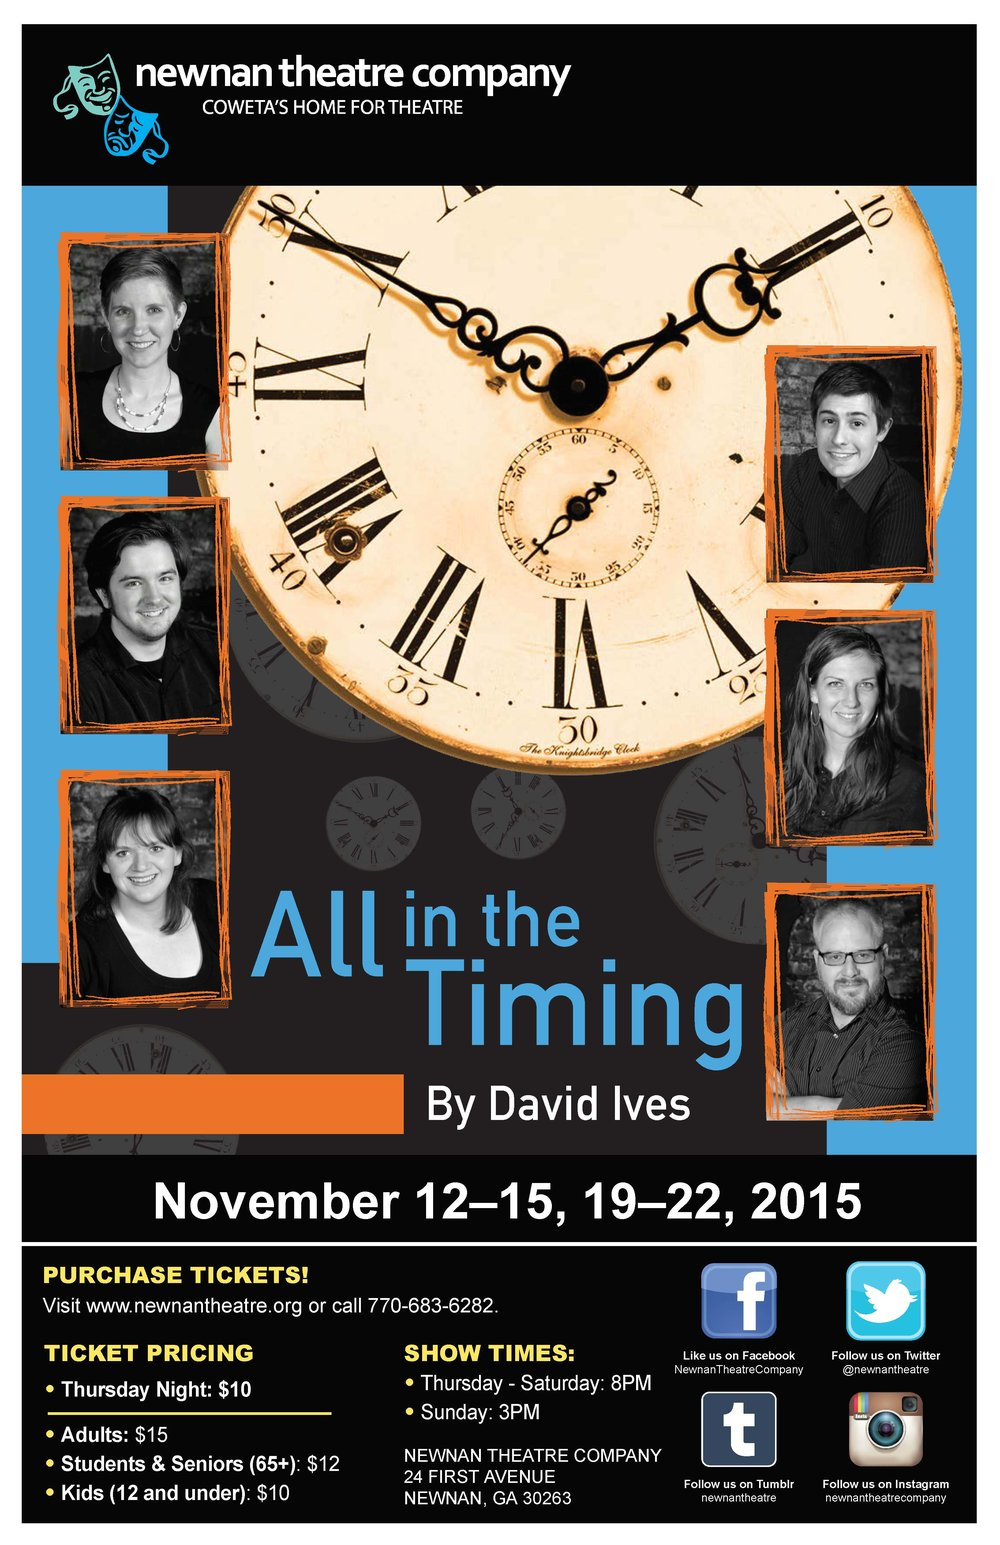 All in the Timing_11x17 poster.jpg